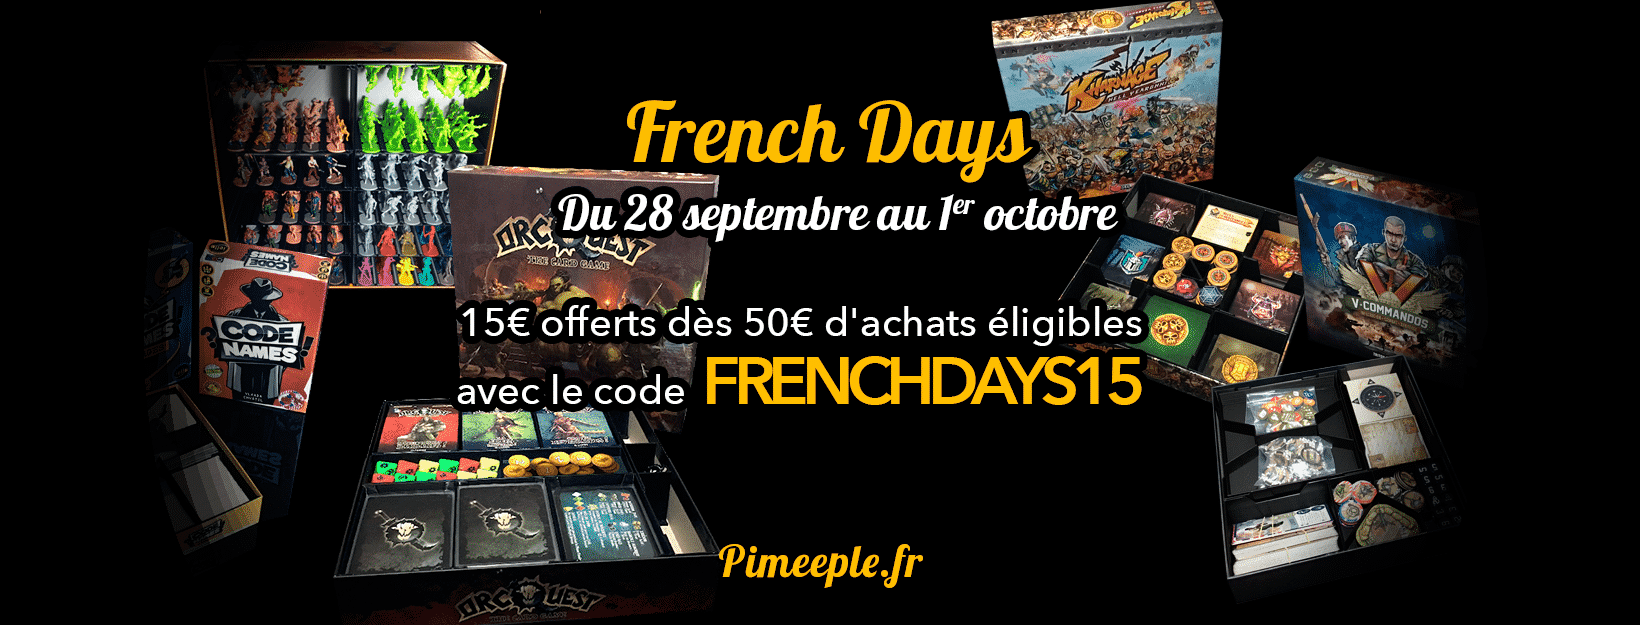 frenchdays15_pimeeple